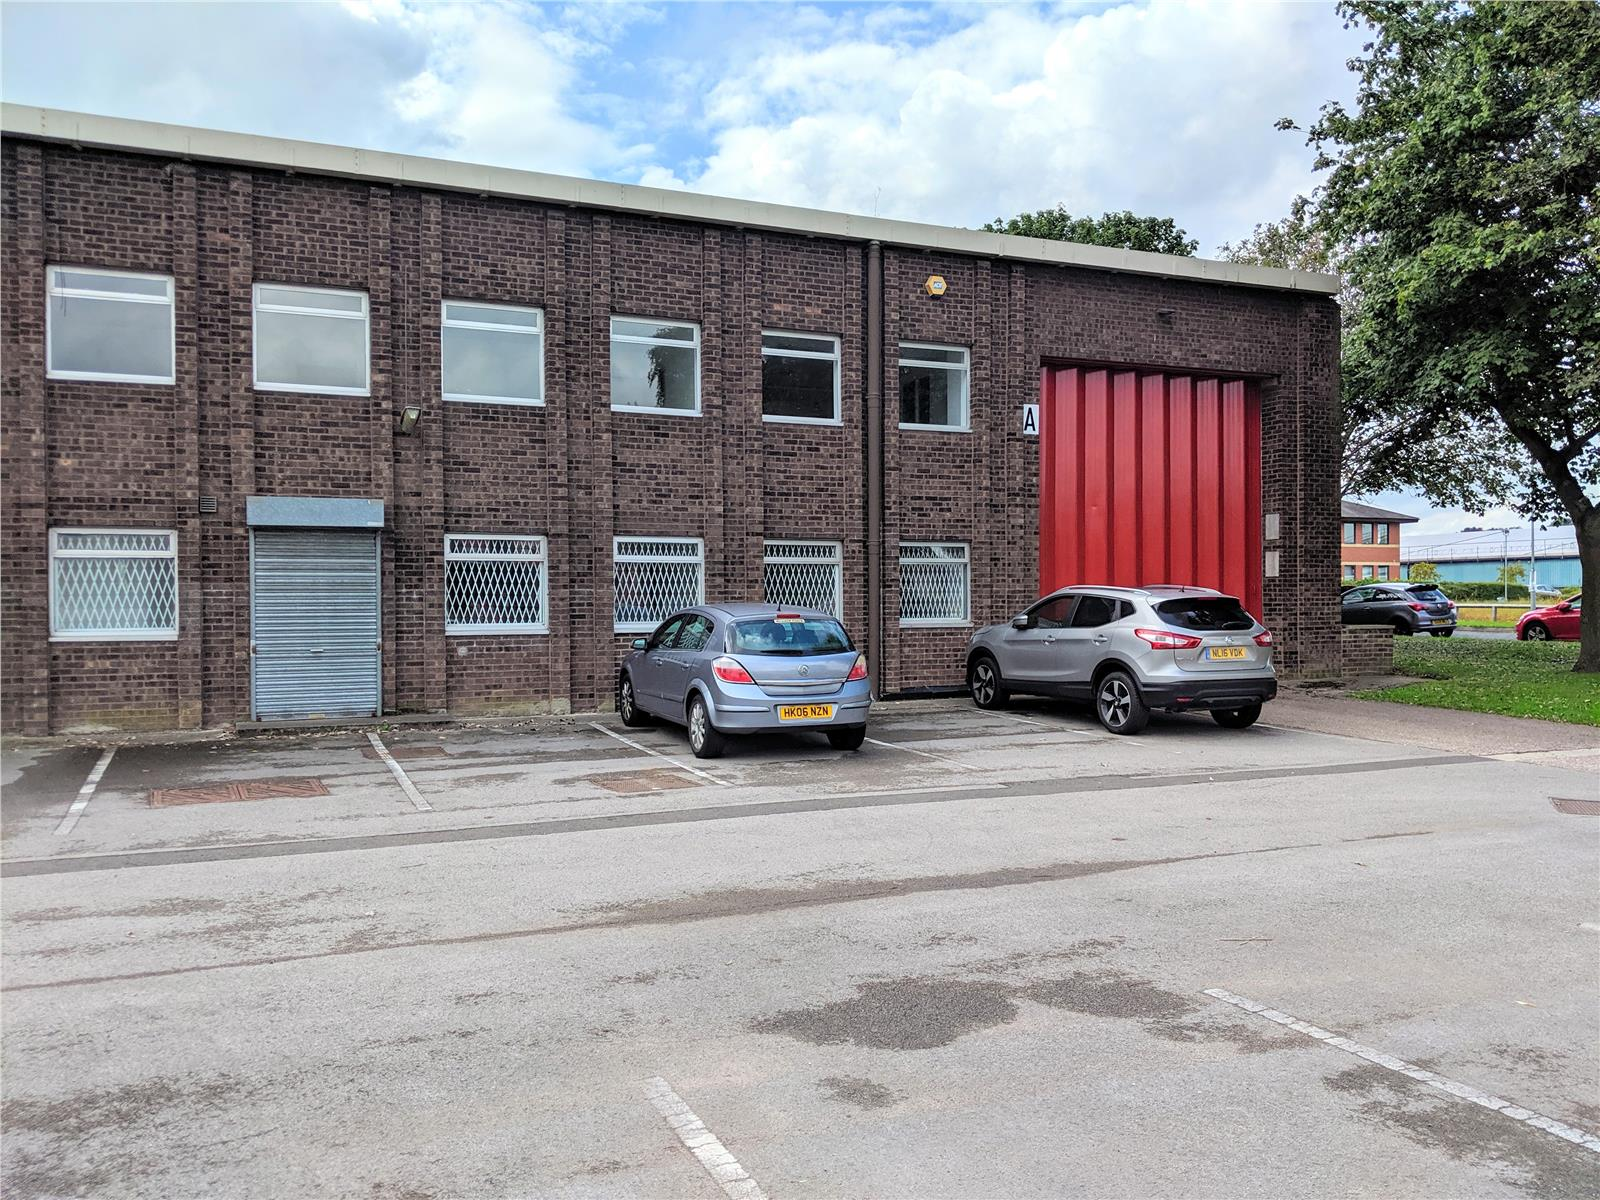 Unit A, Marlborough Close, Knutsford, Cheshire, WA16